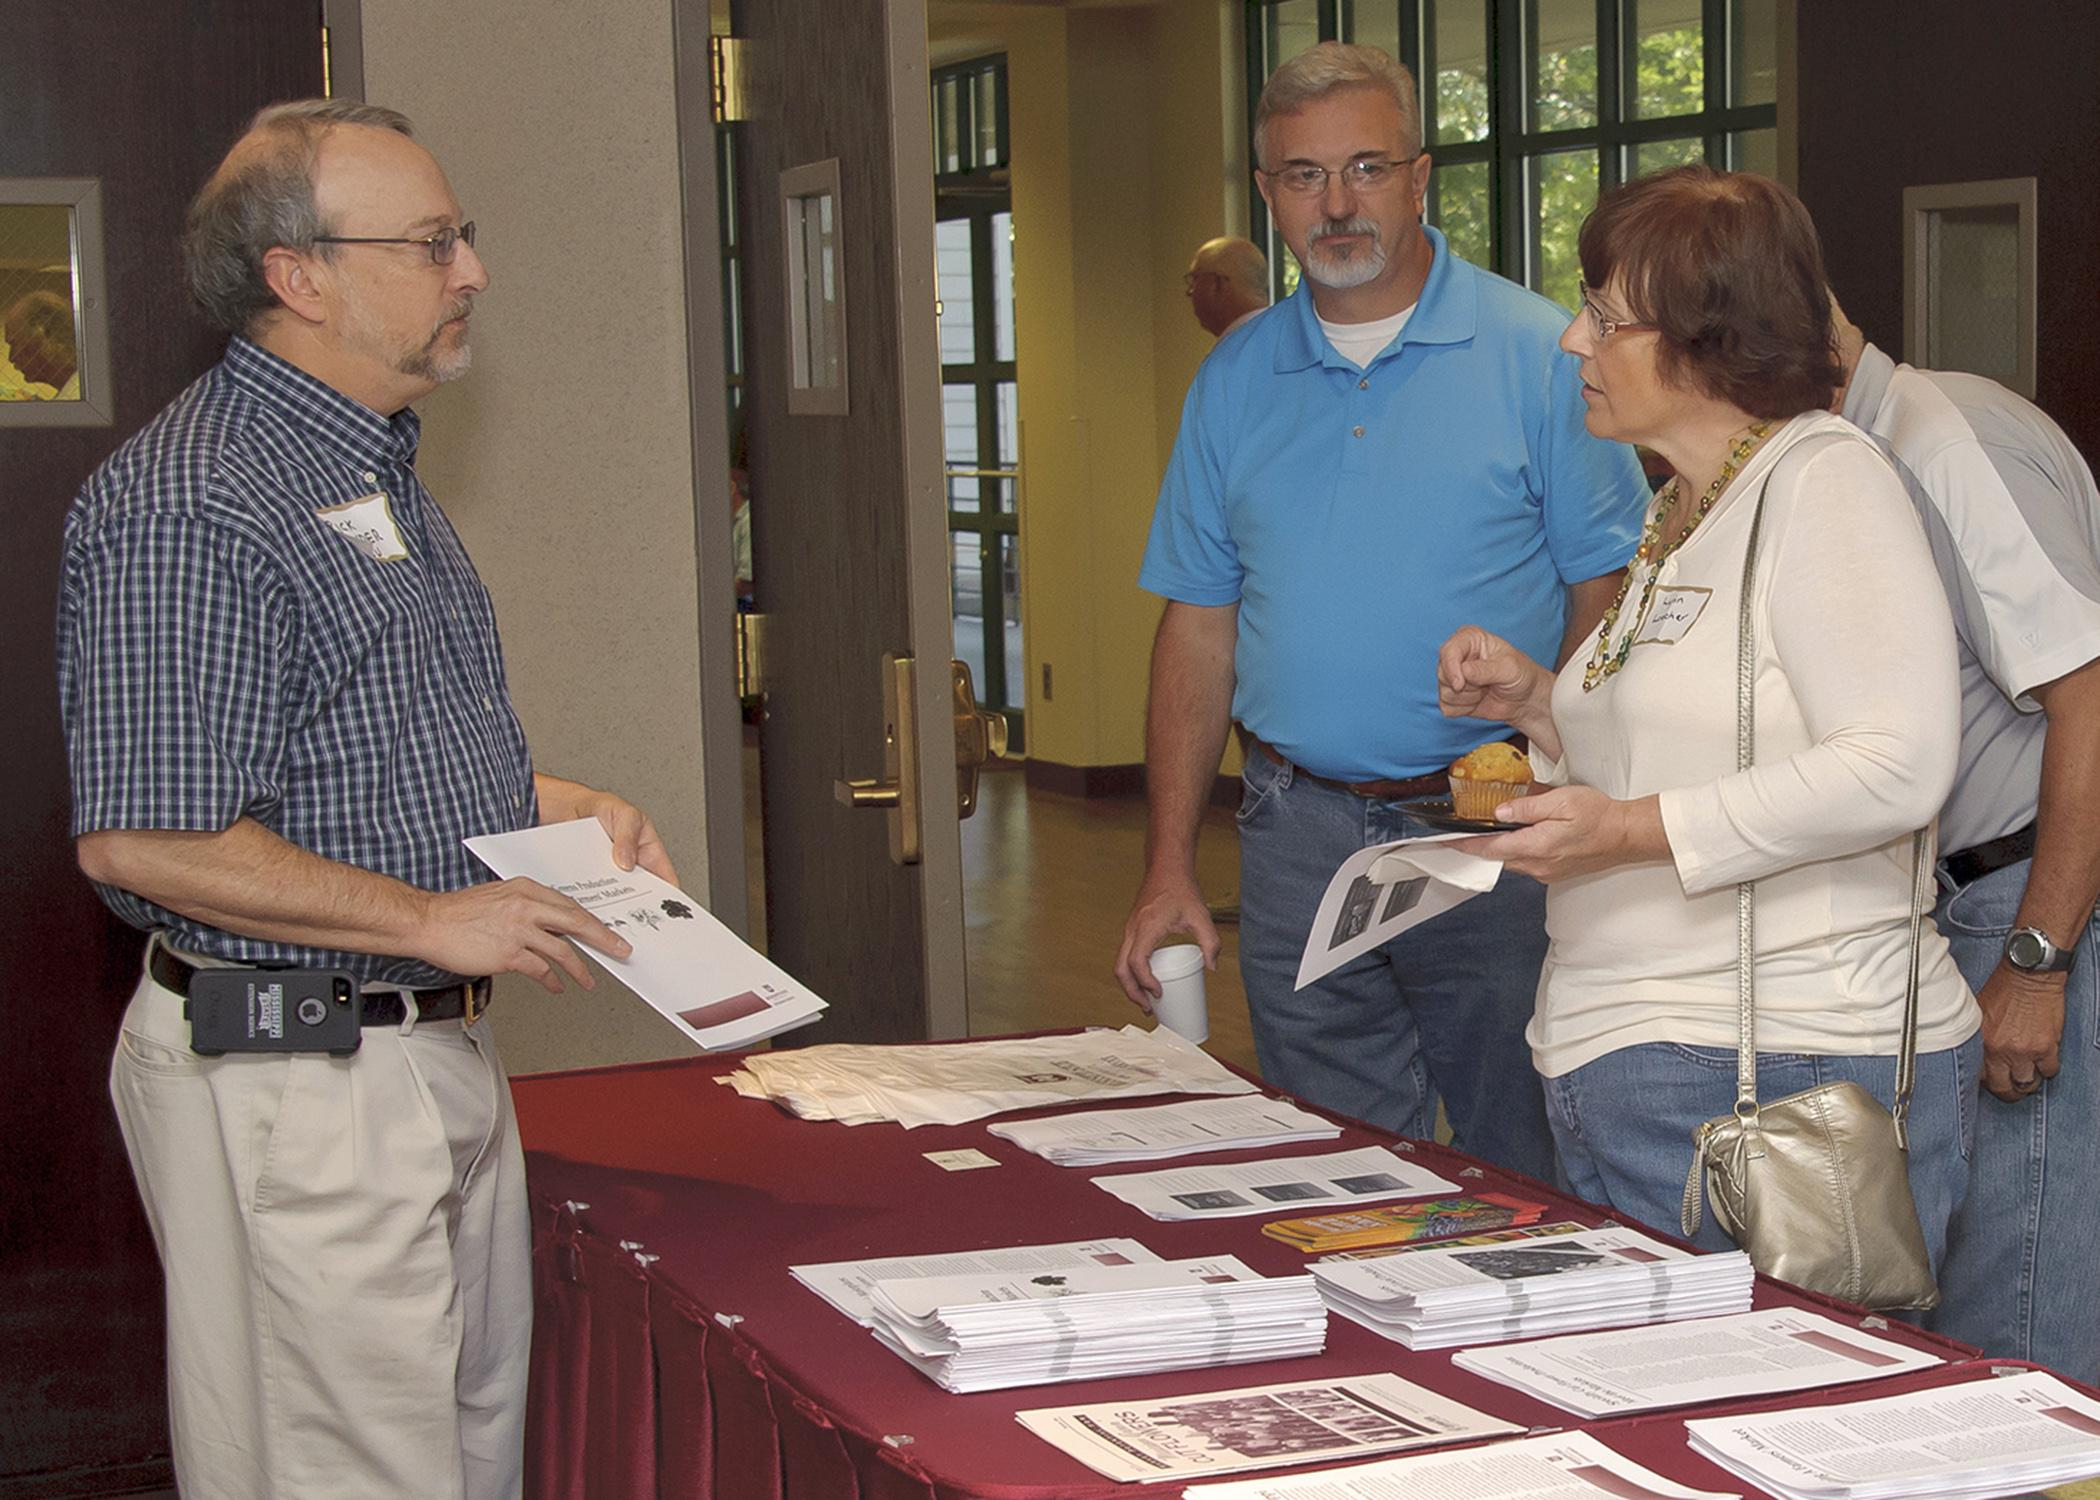 Rick Snyder, Mississippi State University horticulture expert, talks to Joseph Wilson, center, and Lynn Loecher at the microfarming workshop in Raymond on Aug. 28, 2014. The two-day event helped growers understand the benefits and facts of growing for and selling at farmers markets. (Photo by MSU Ag Communications/Kevin Hudson)